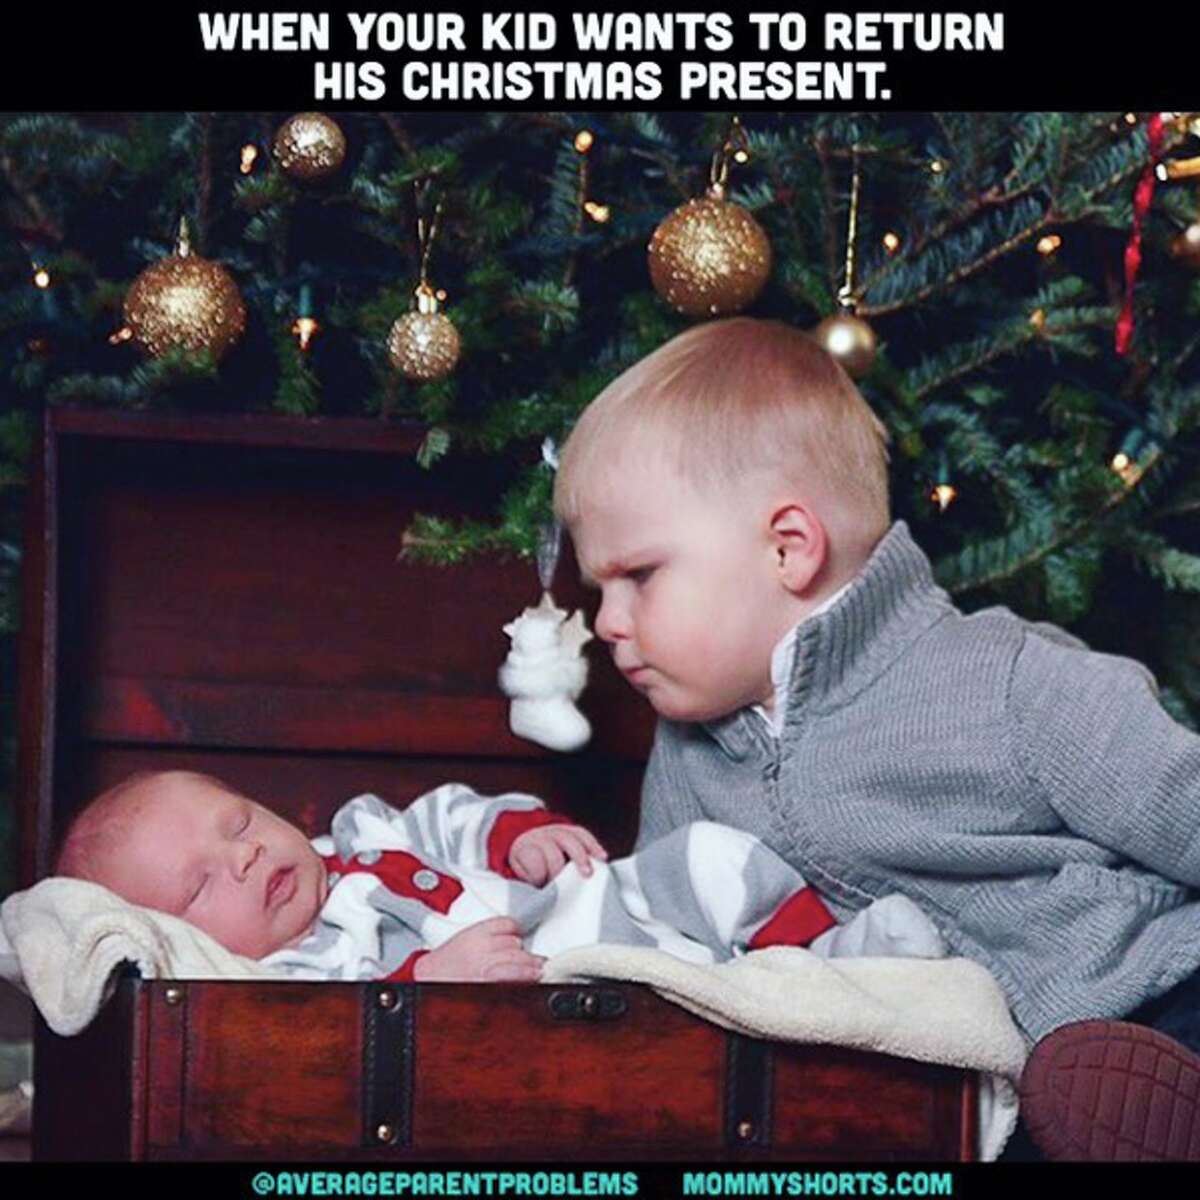 Find more examples of the kids messing up Christmas at the Average Parent Problems Instagram page.